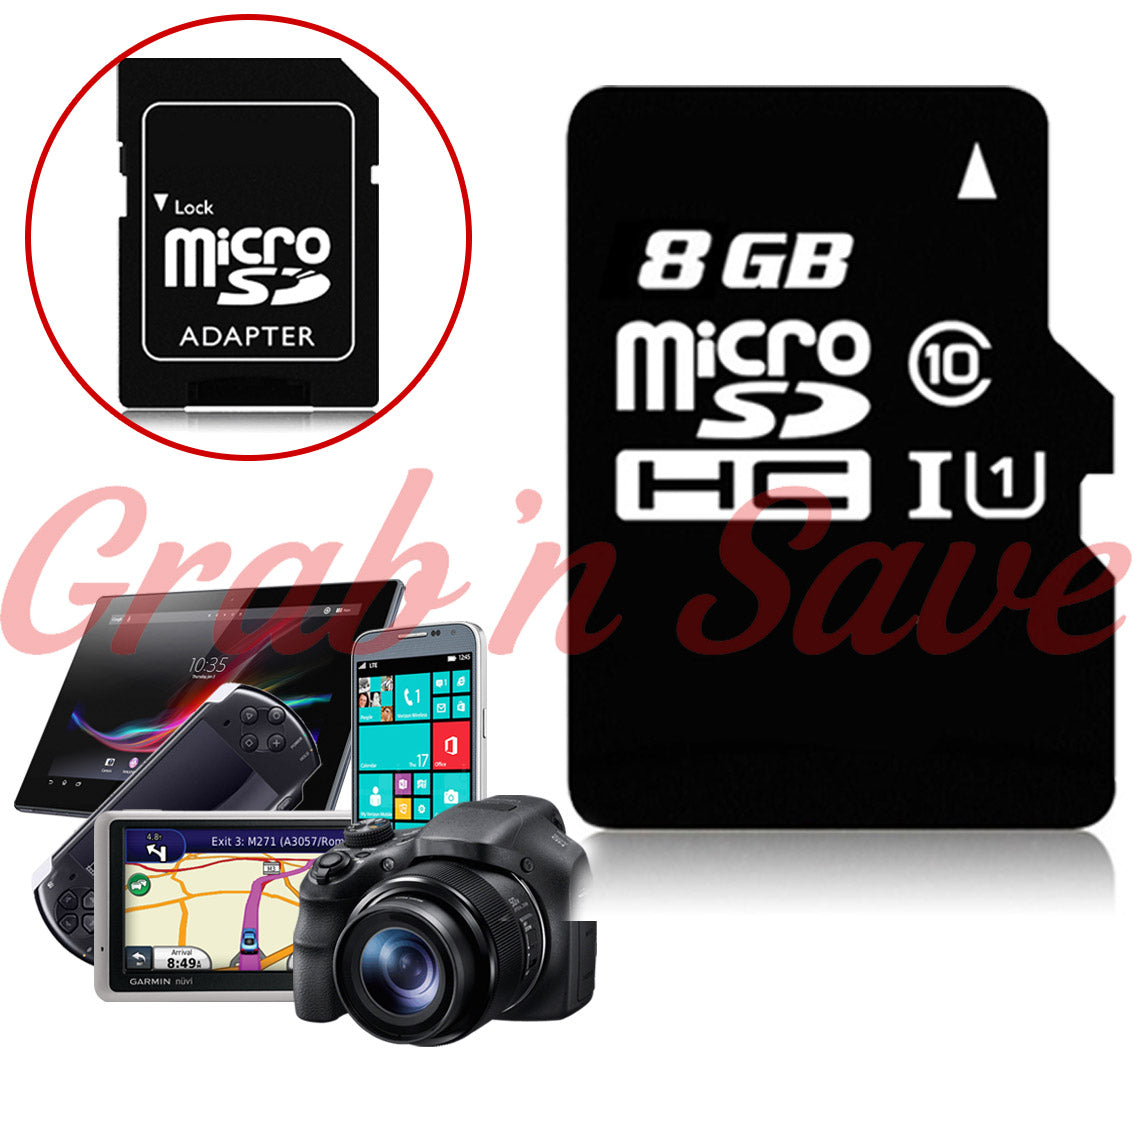 8GB Micro SD Card, Micro SD Card, Class 10 Micro SD Card